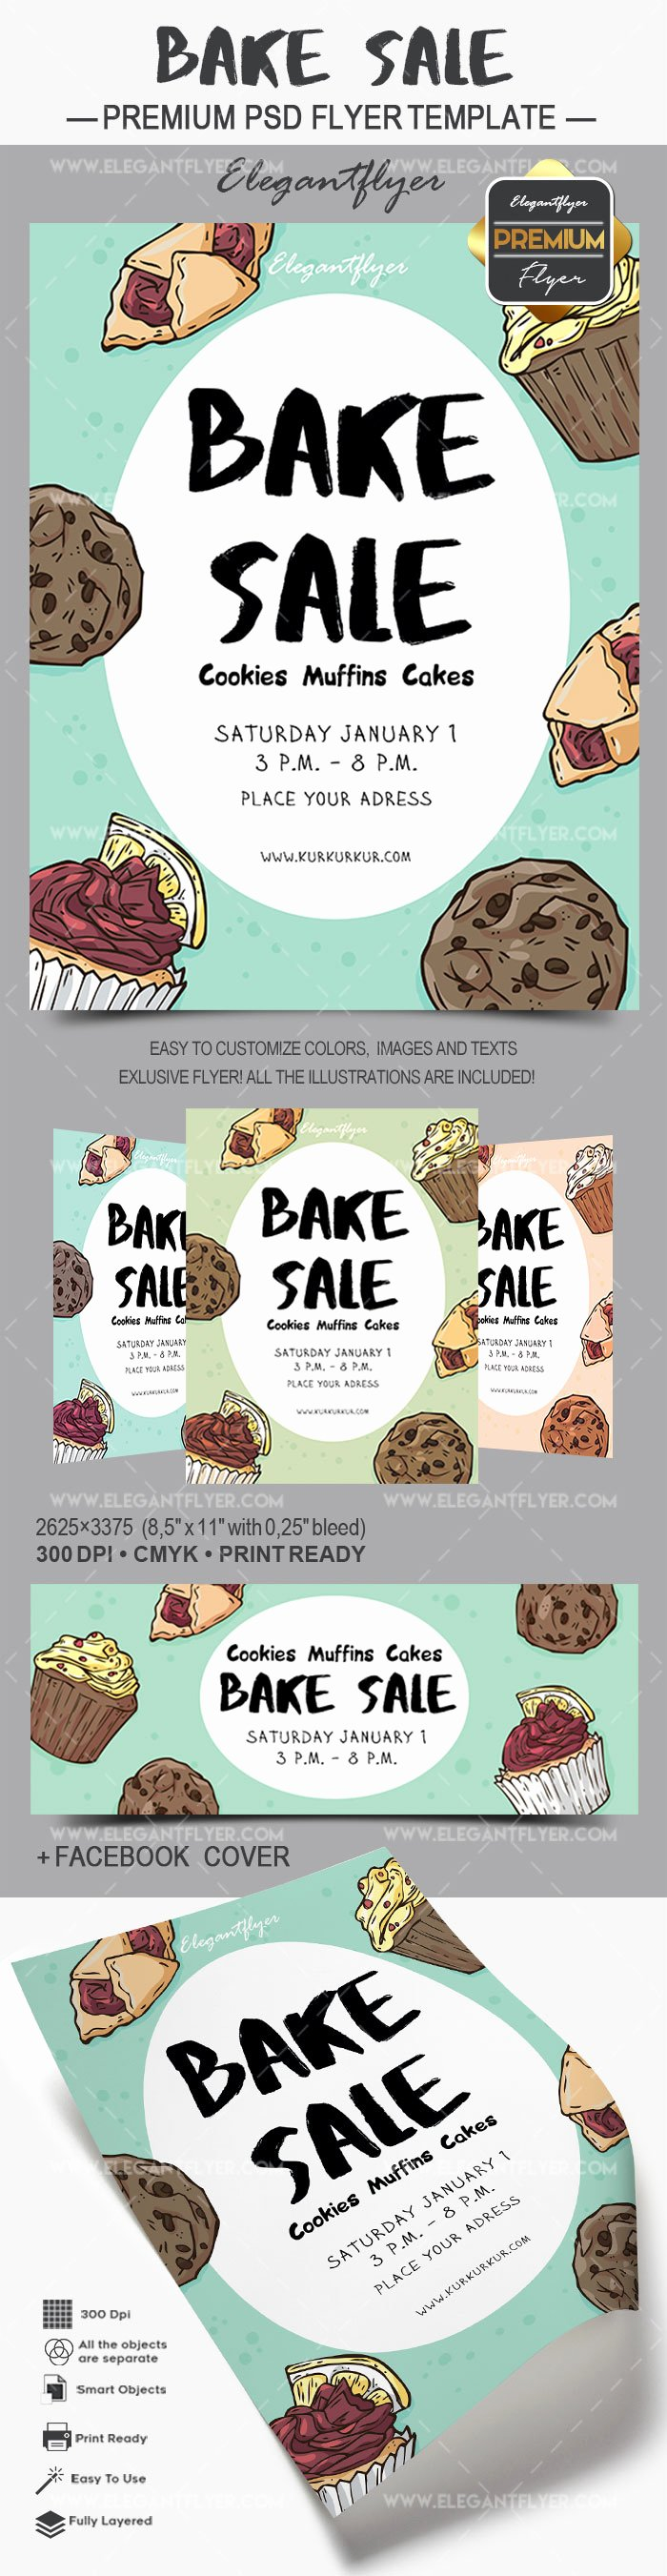 Bake Sale Flyers Templates Free Best Of Flyer for Bake Sale Cookies Muffins Cakes – by Elegantflyer